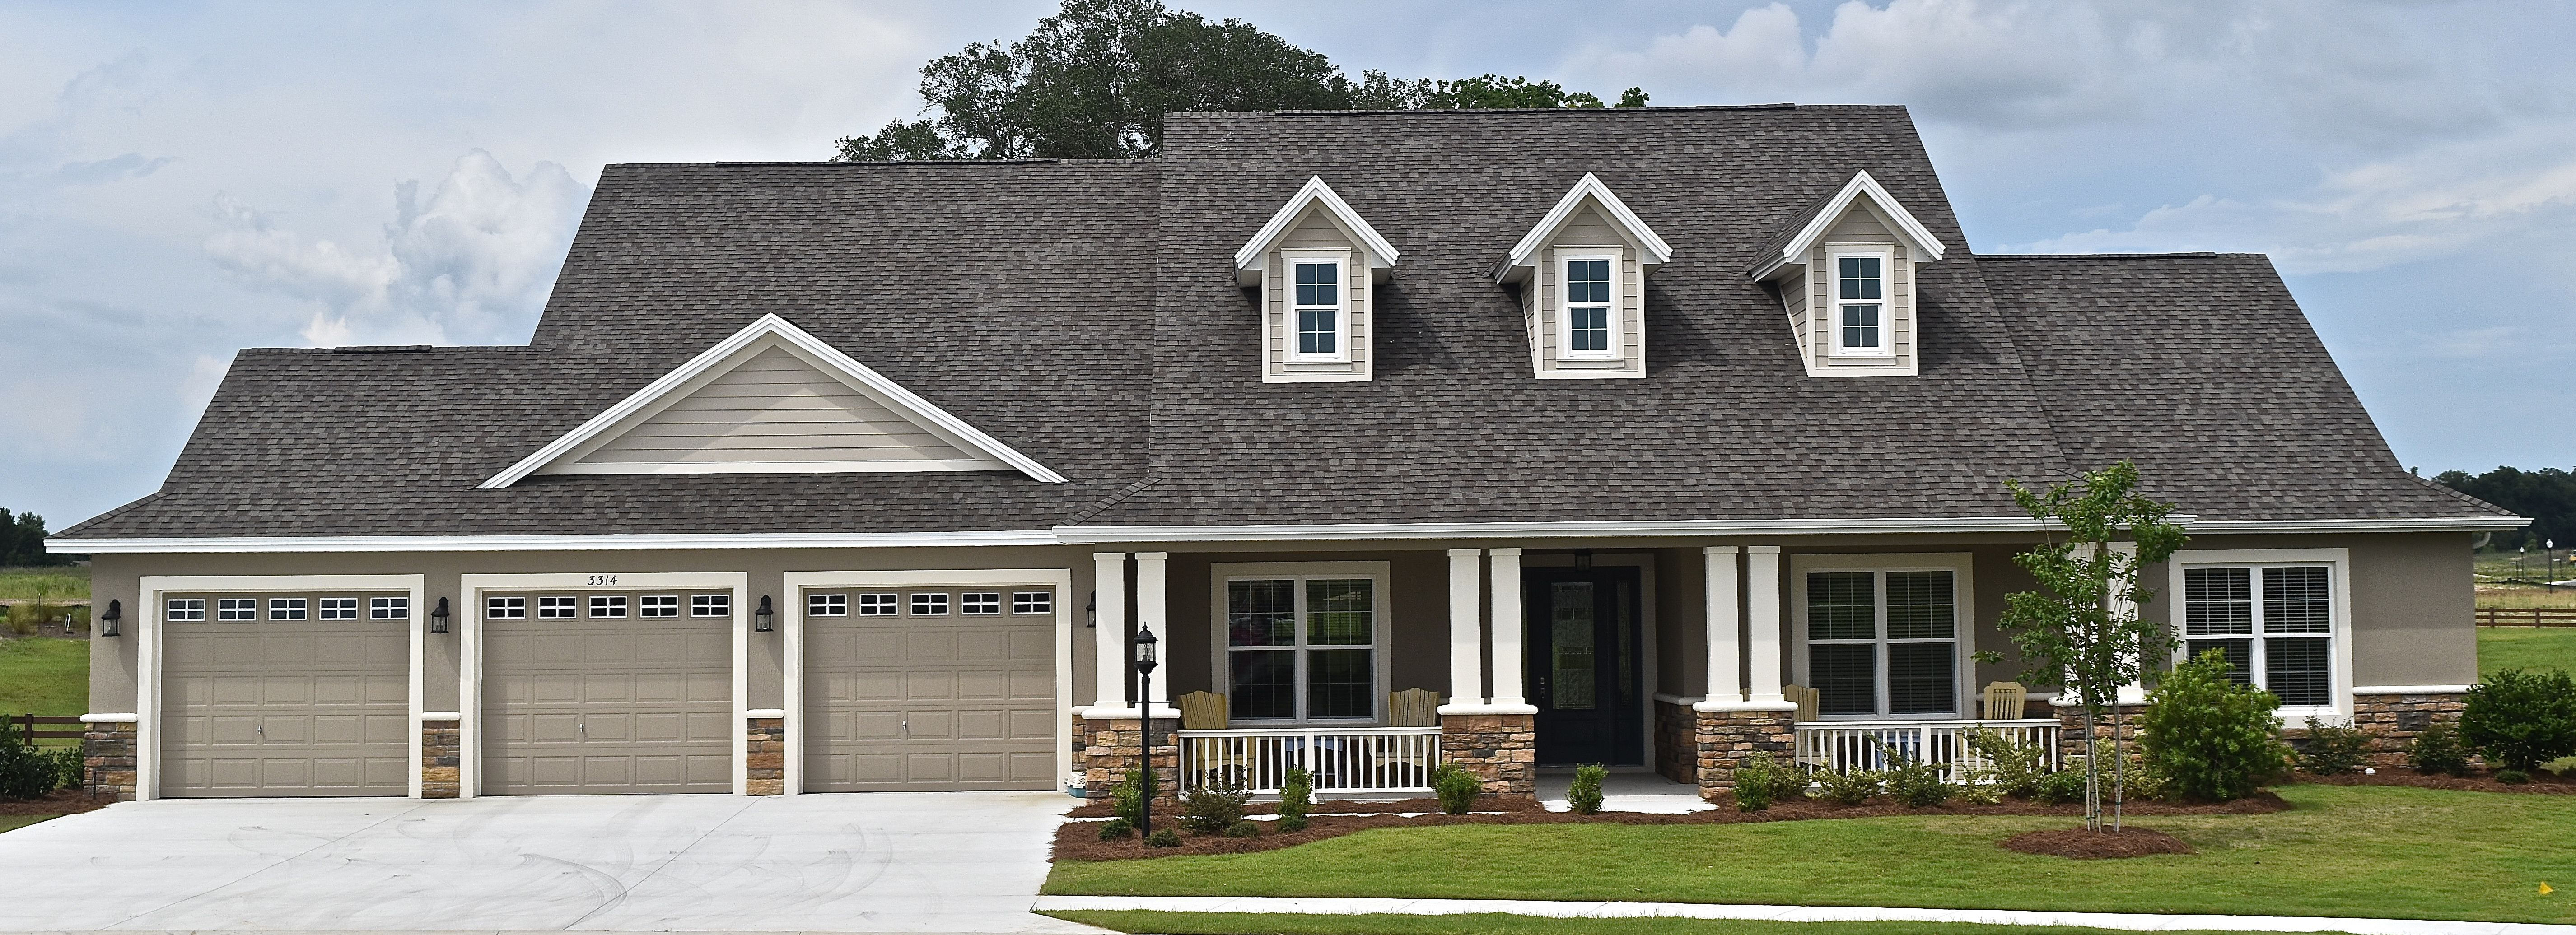 Best Weathered Wood Shingles Google Search Curb Appeal 640 x 480